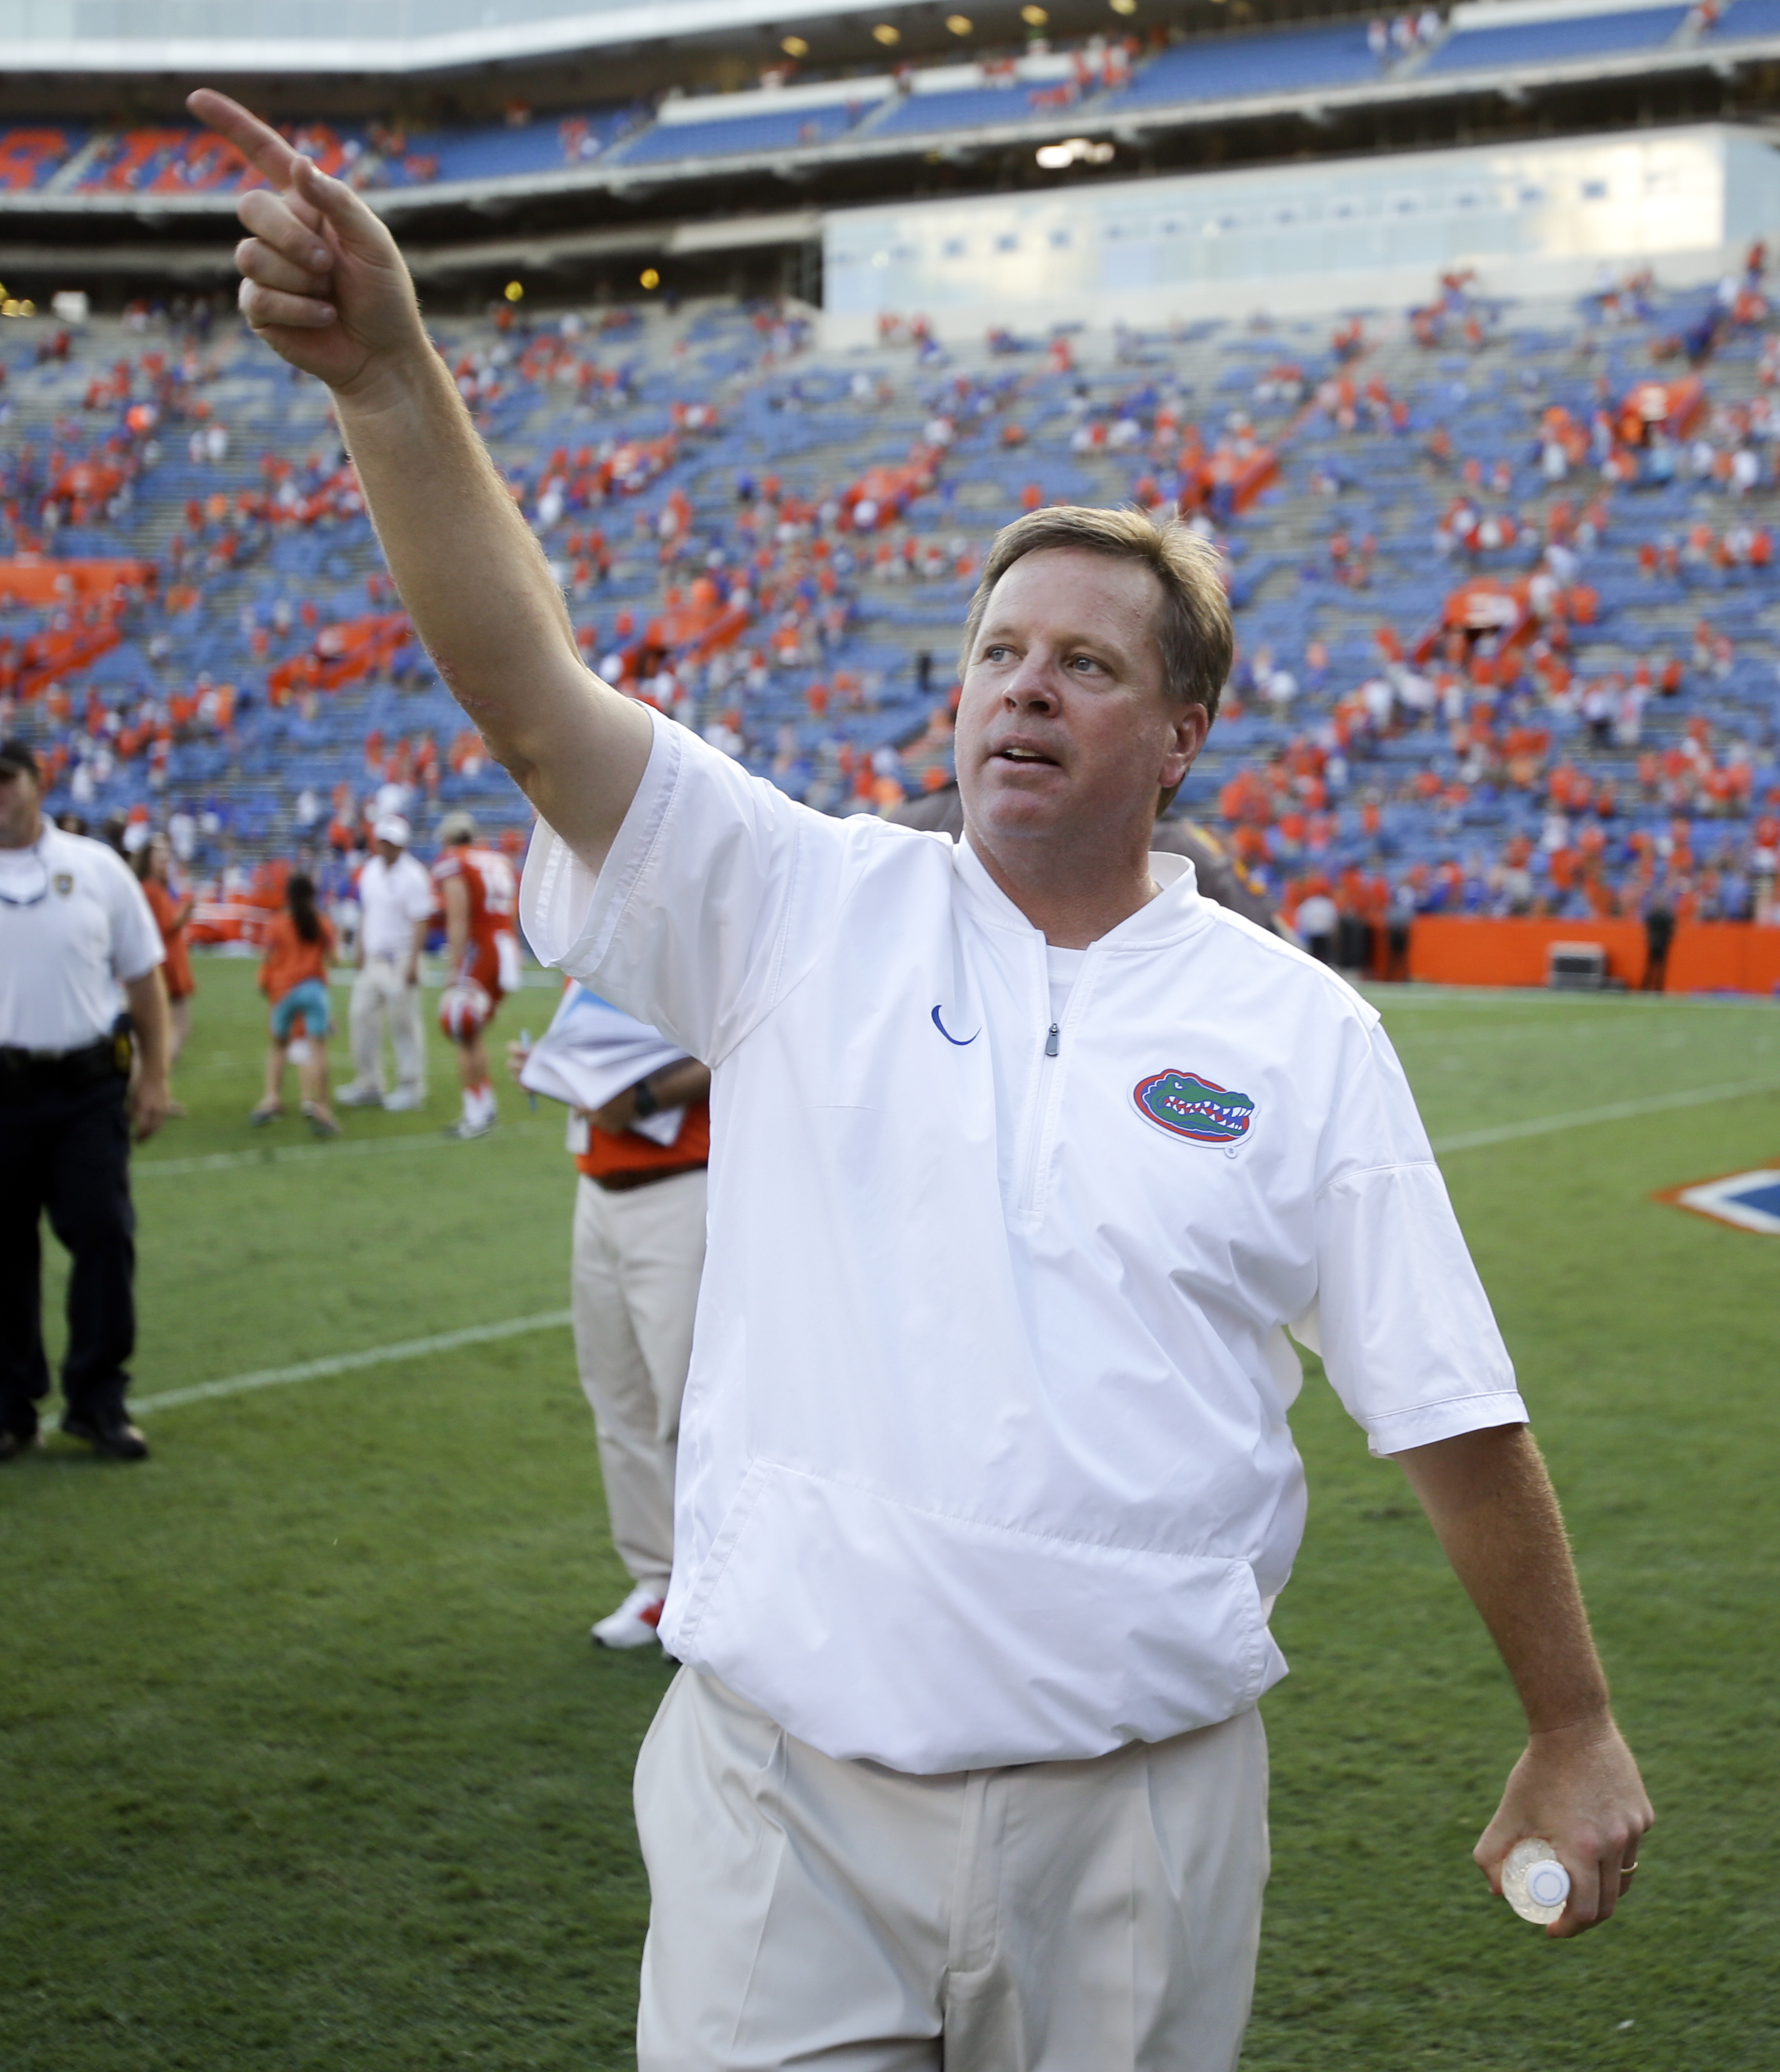 Florida head coach Jim McElwain points to fans as they cheer after Florida defeated Kentucky 45-7 in an NCAA college football game, Saturday, Sept. 10, 2016, in Gainesville, Fla. (AP Photo/John Raoux)